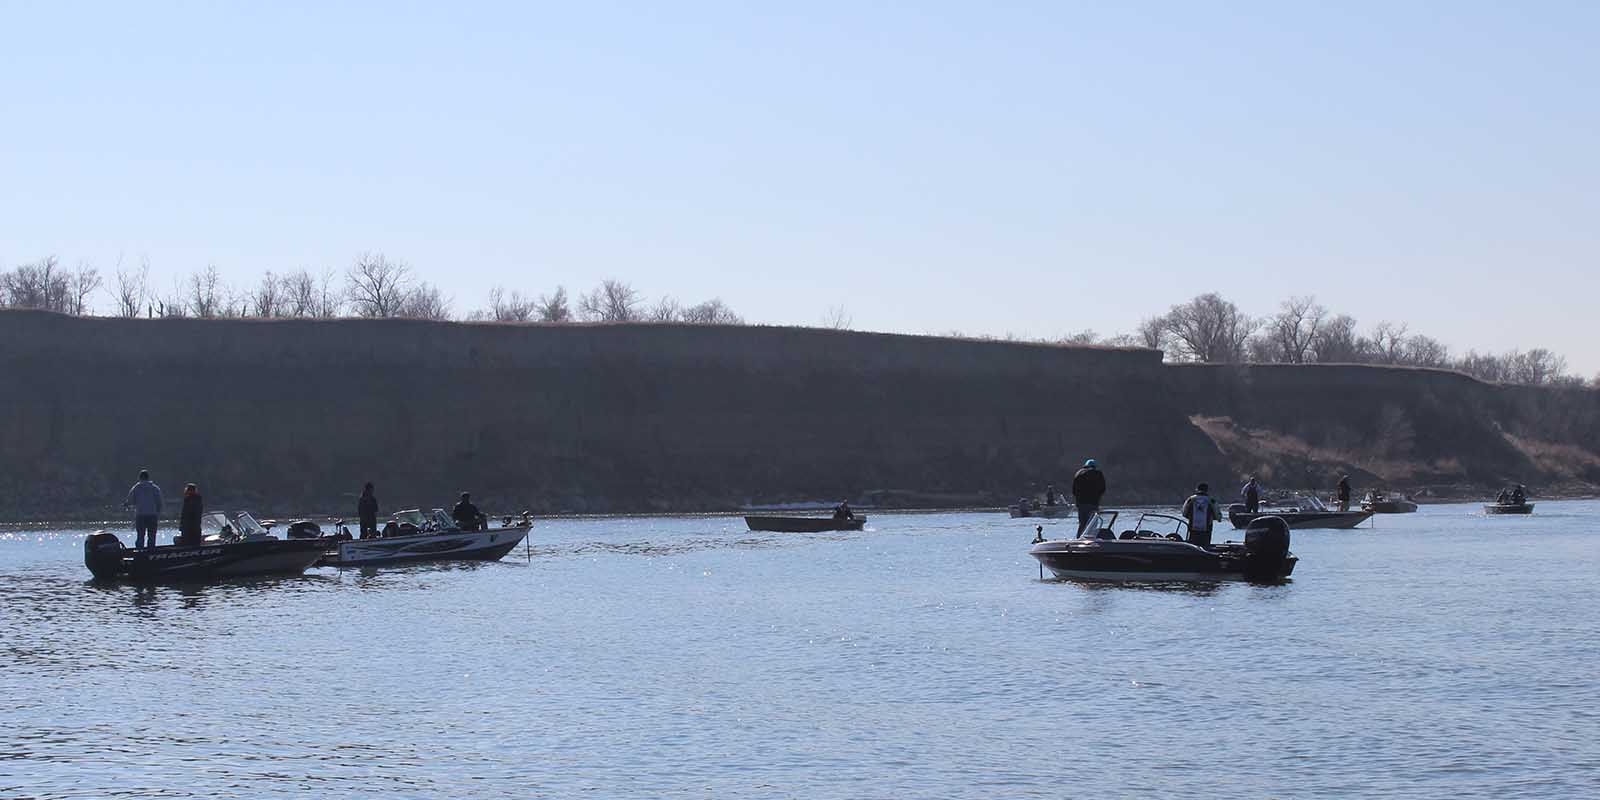 Boats in front of Hazleton Ramp